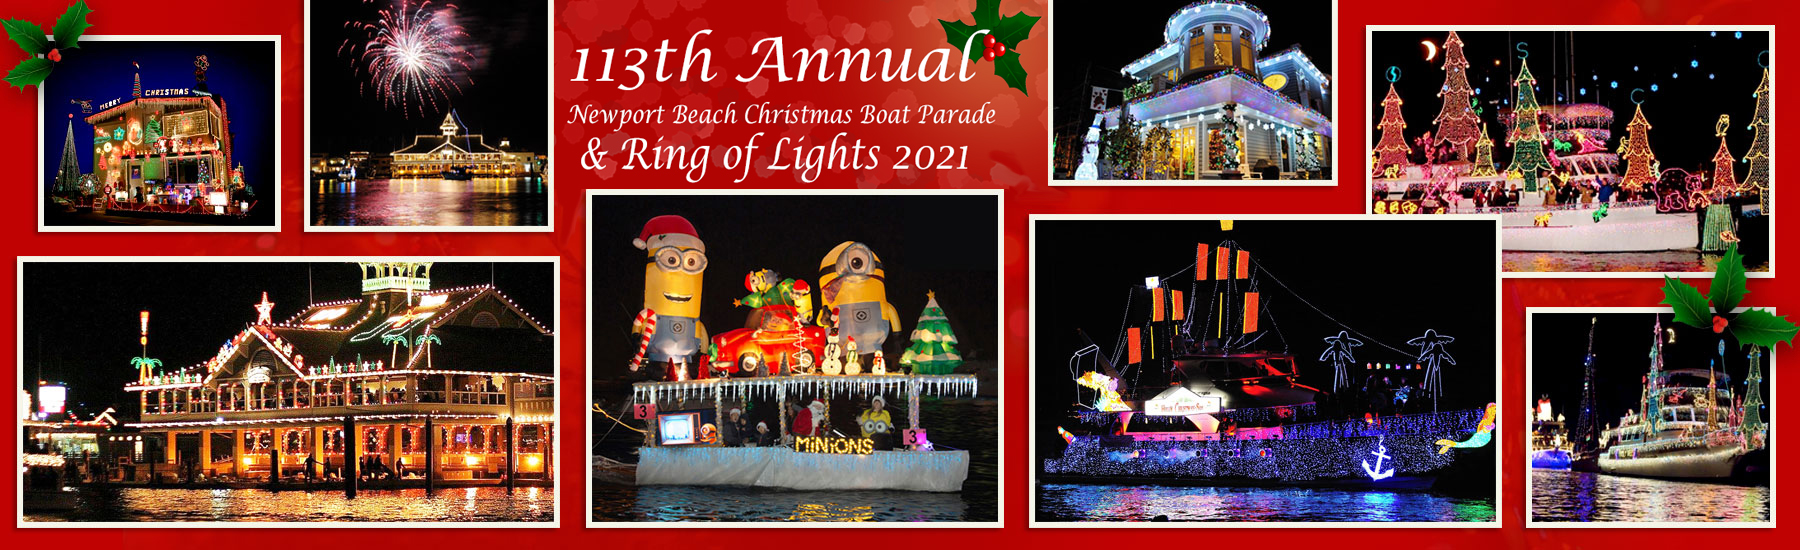 2020 Newport Beach Christmas Boat Parade 2020 Newport Beach Boat Parade Website   Company Christmas Event